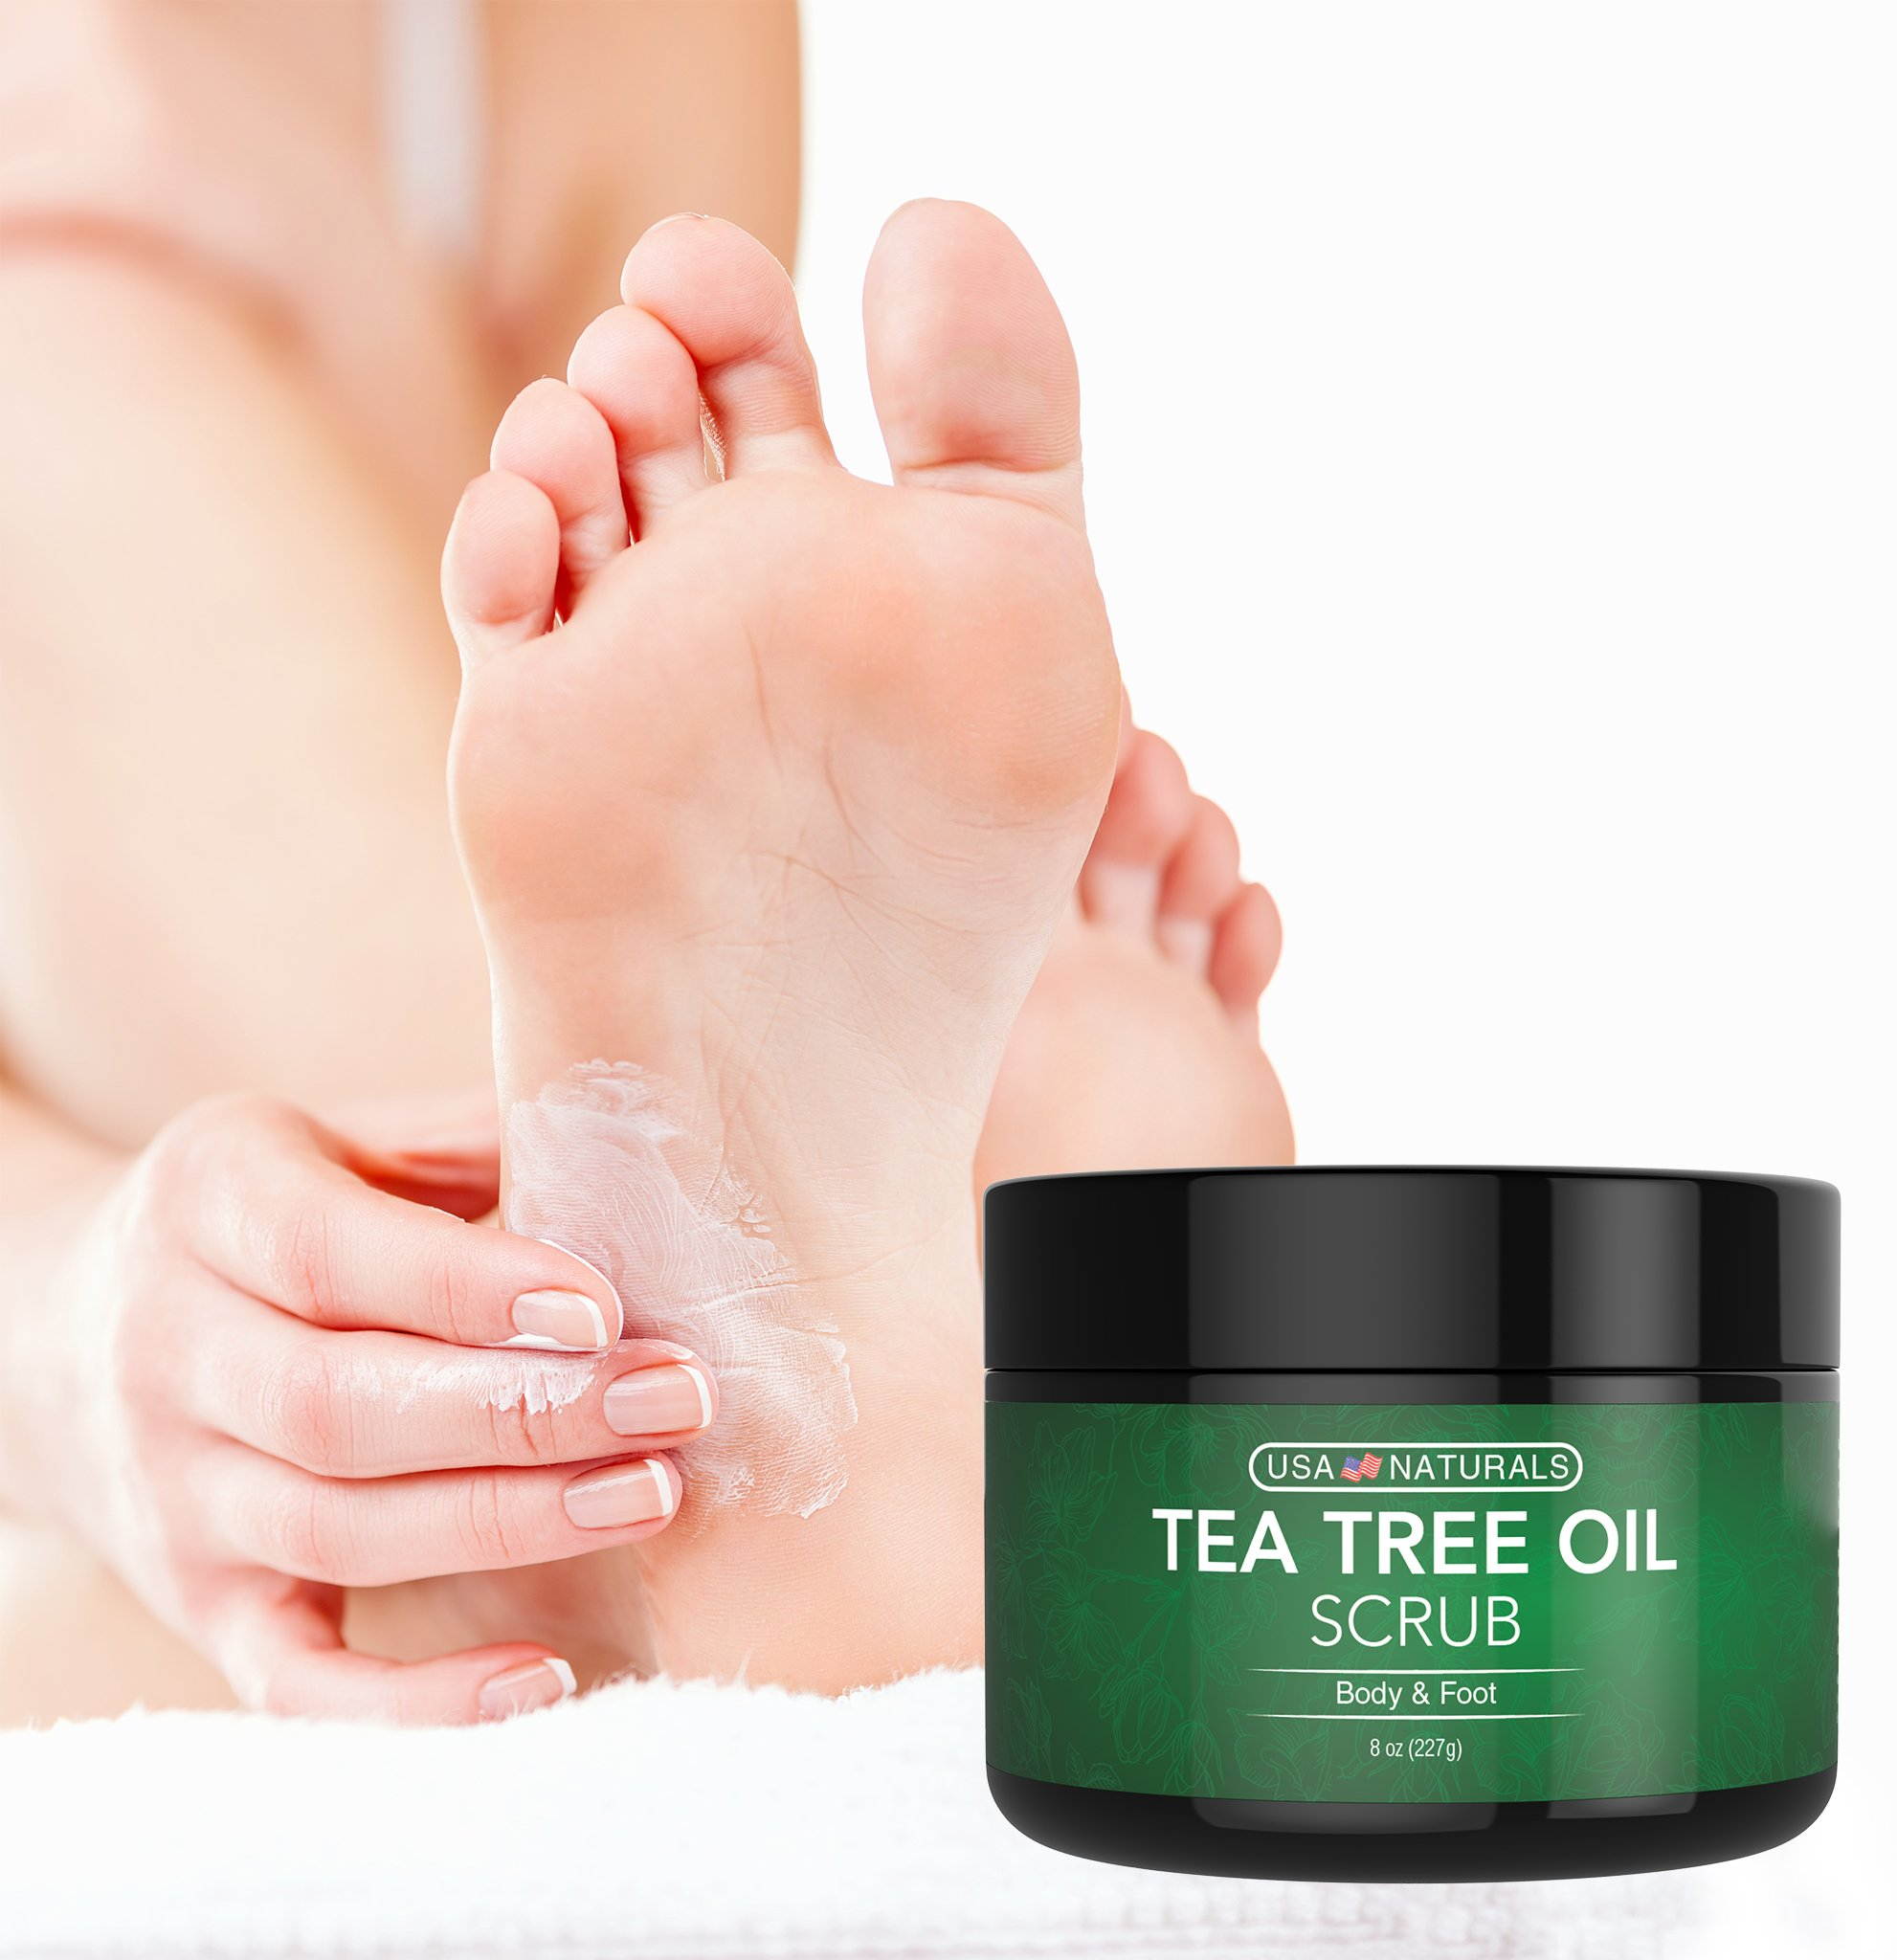 Tea Tree Oil Foot and Body Scrub - Antifungal Treatment - Exfoliating Scrub with a Unique Blend of Essential Oils - Smooths Calluses - Helps With Athlete's Foot, Acne, Jock Itch & Dead, Dry Skin by USA Naturals (Image #8)